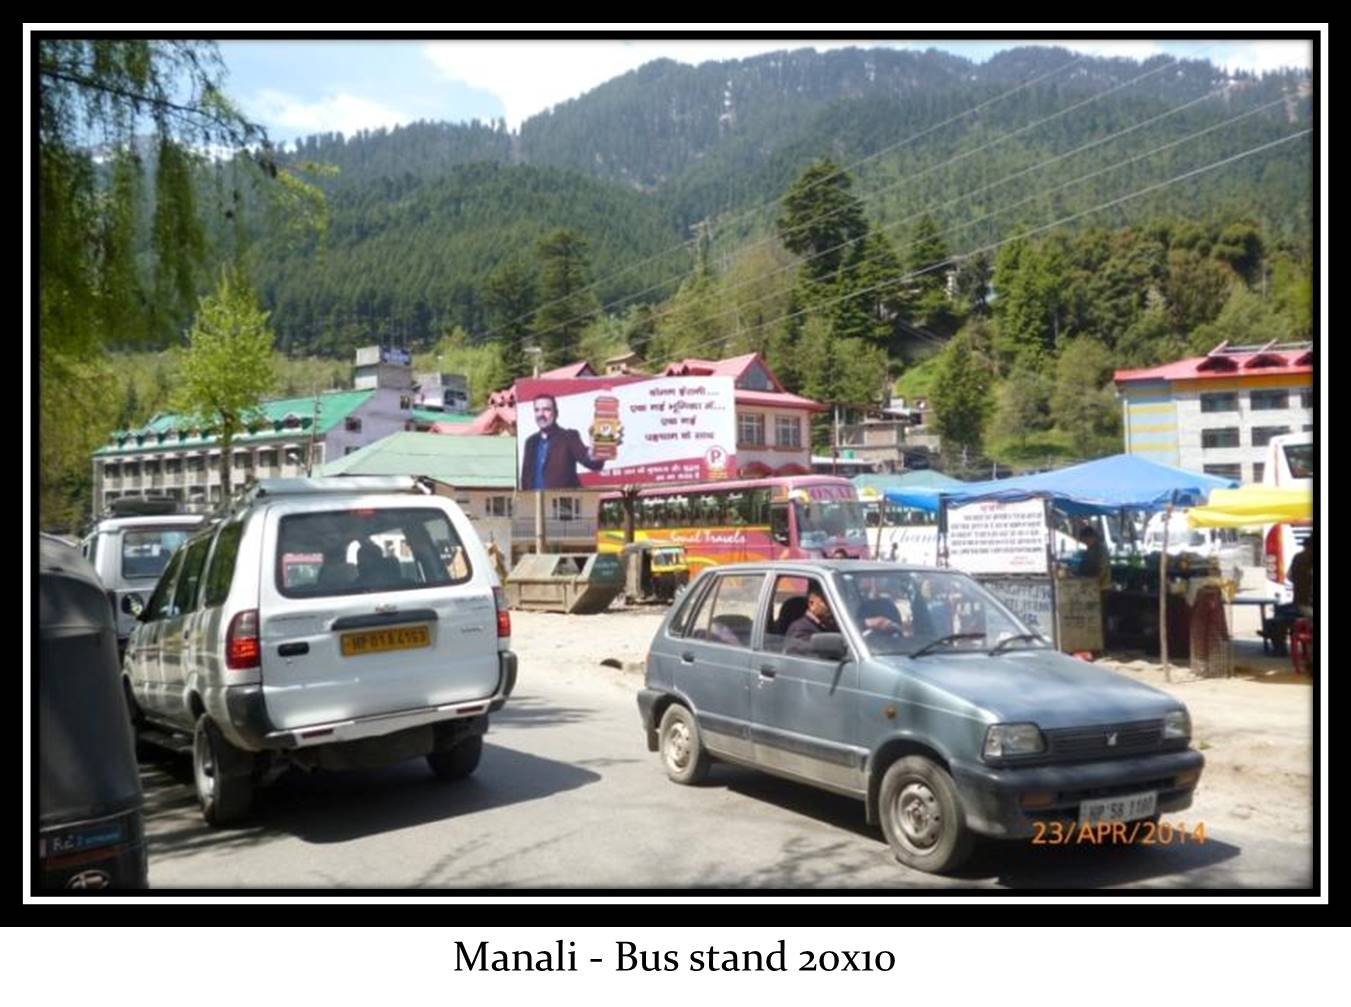 Bus stand, Manali